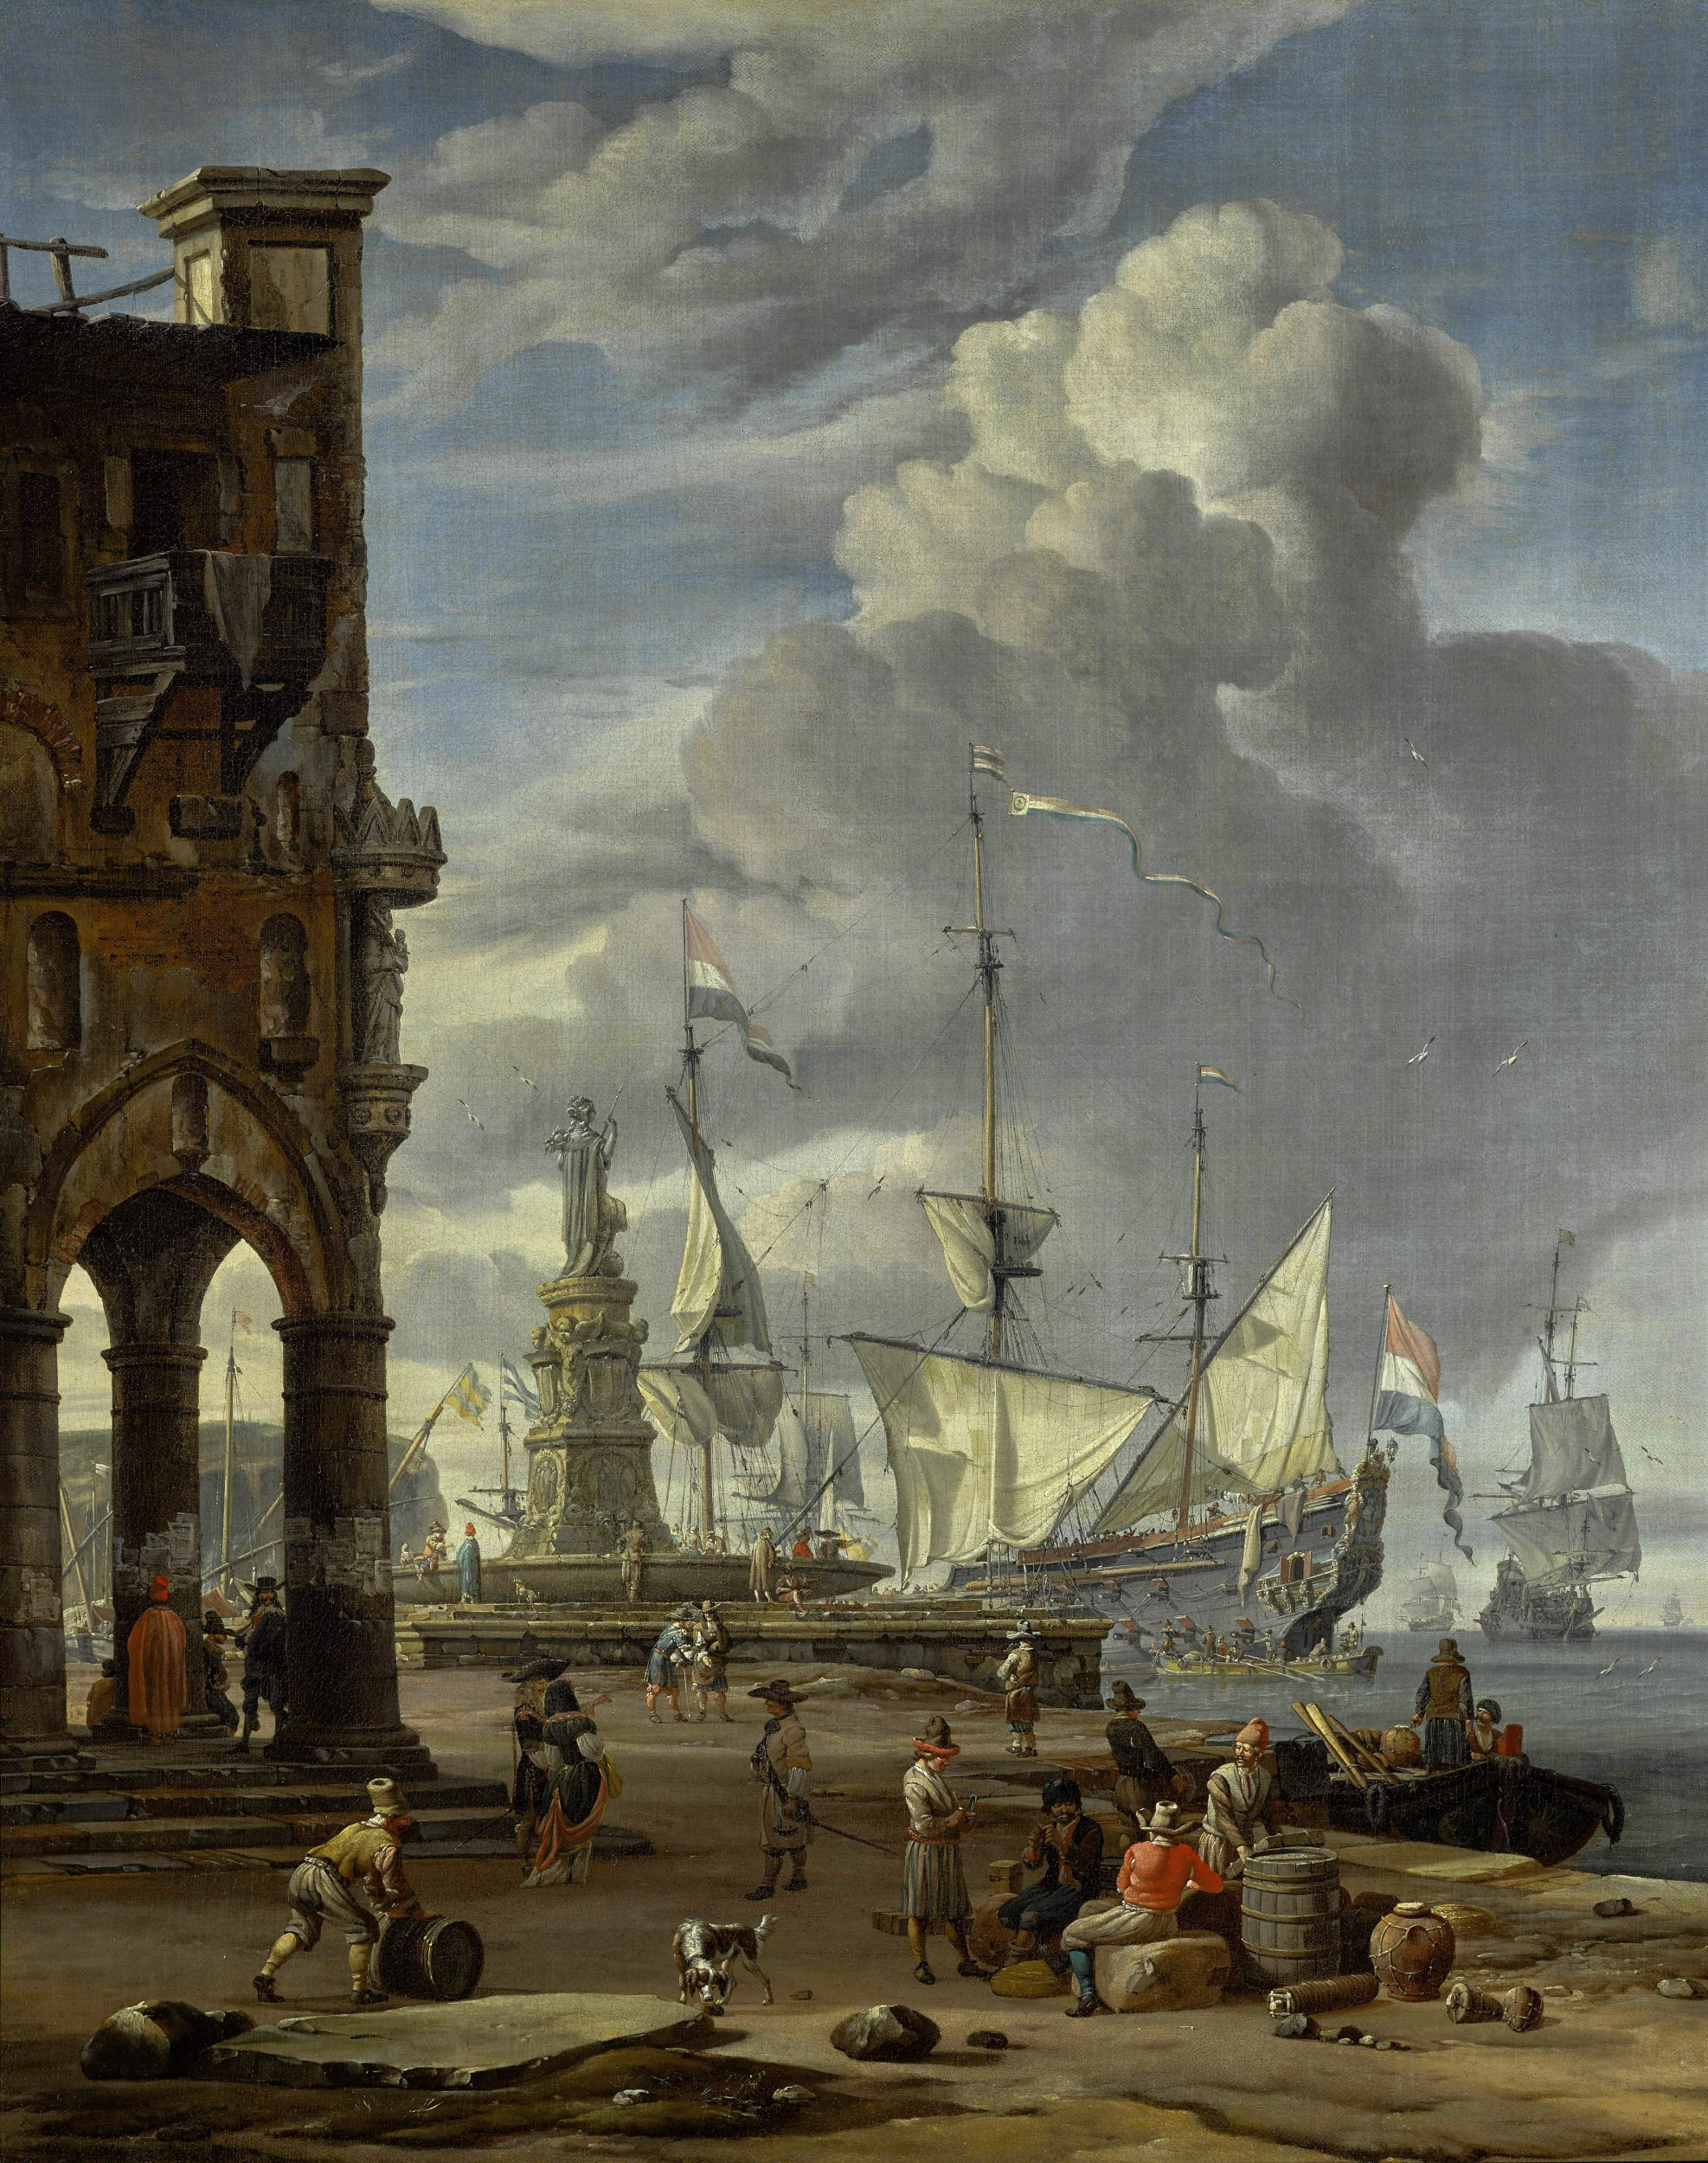 A southern port scene with numerous figures on a quayside